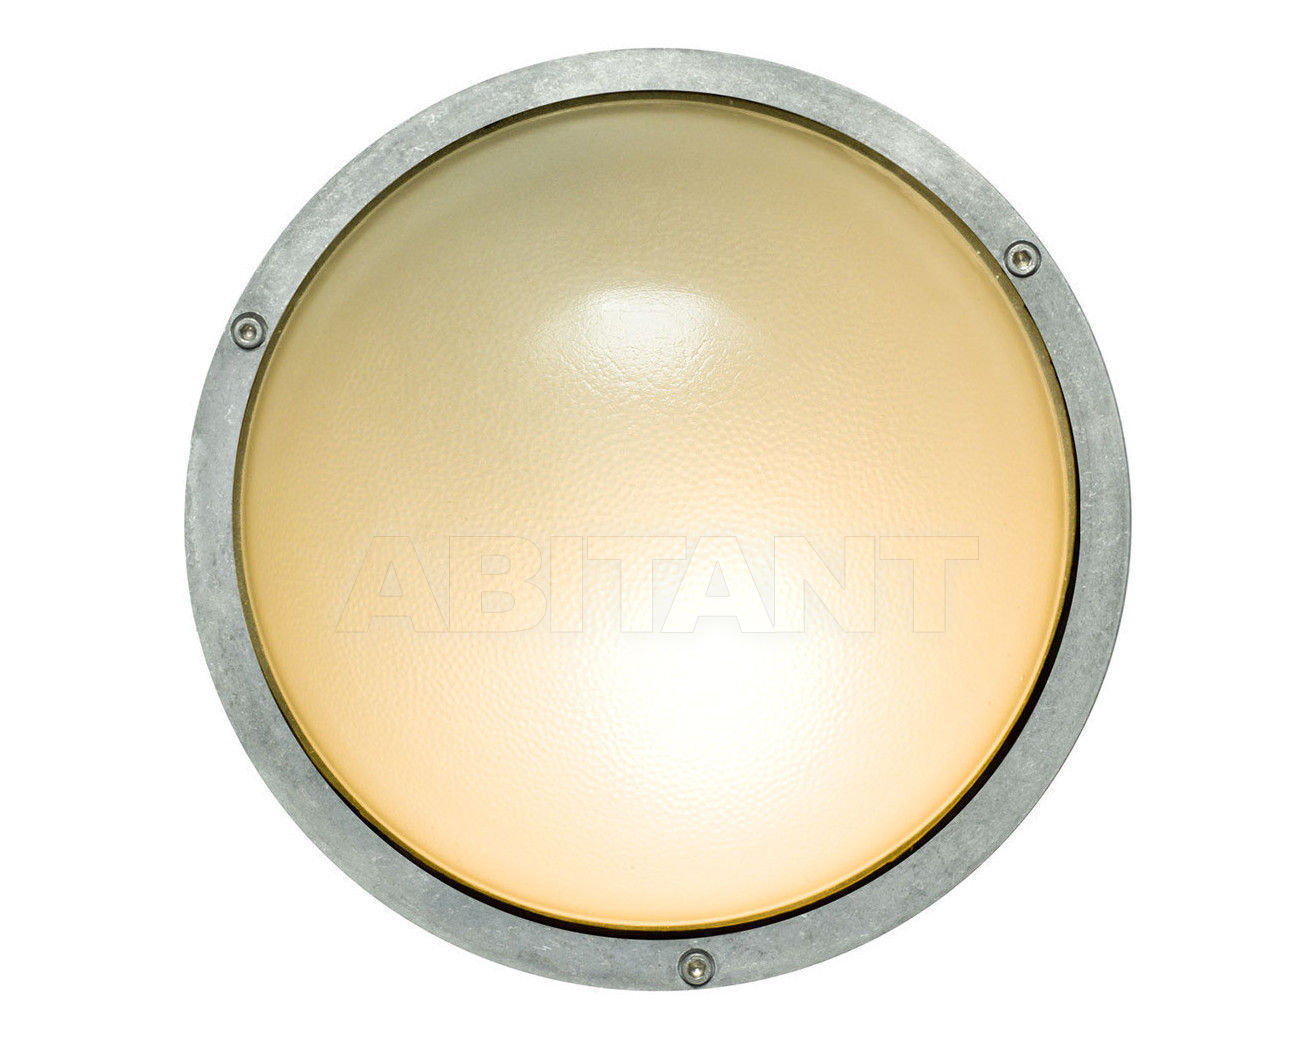 Купить Светильник Davey Lighting Bulkhead Lights 8134/AL/G24